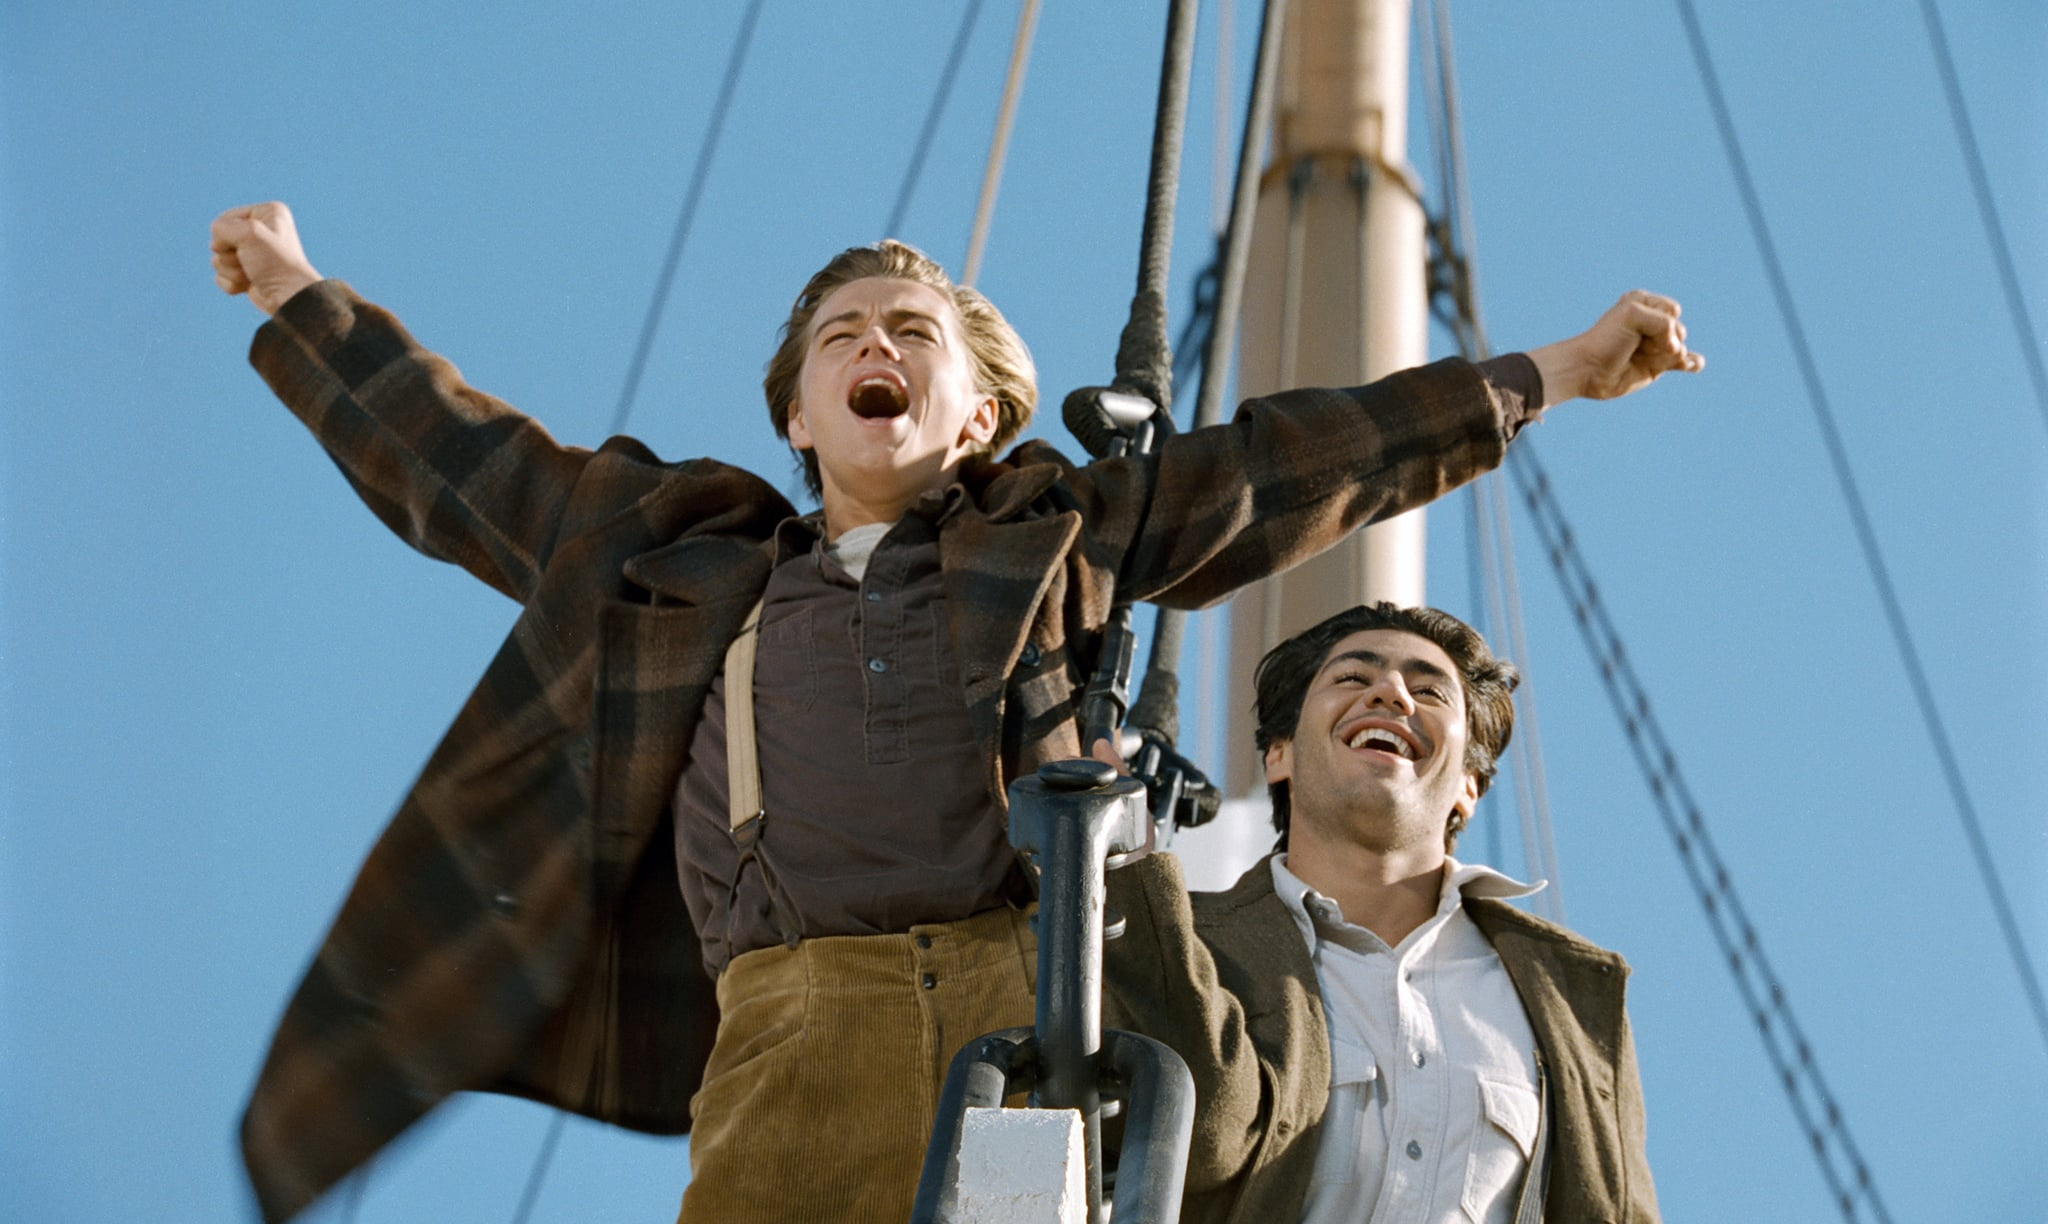 TITANIC, from left: Leonardo DiCaprio, Danny Nucci, 1997. TM & Copyright 20th Century Fox Film Corp. All rights reserved./Courtesy Everett Collection